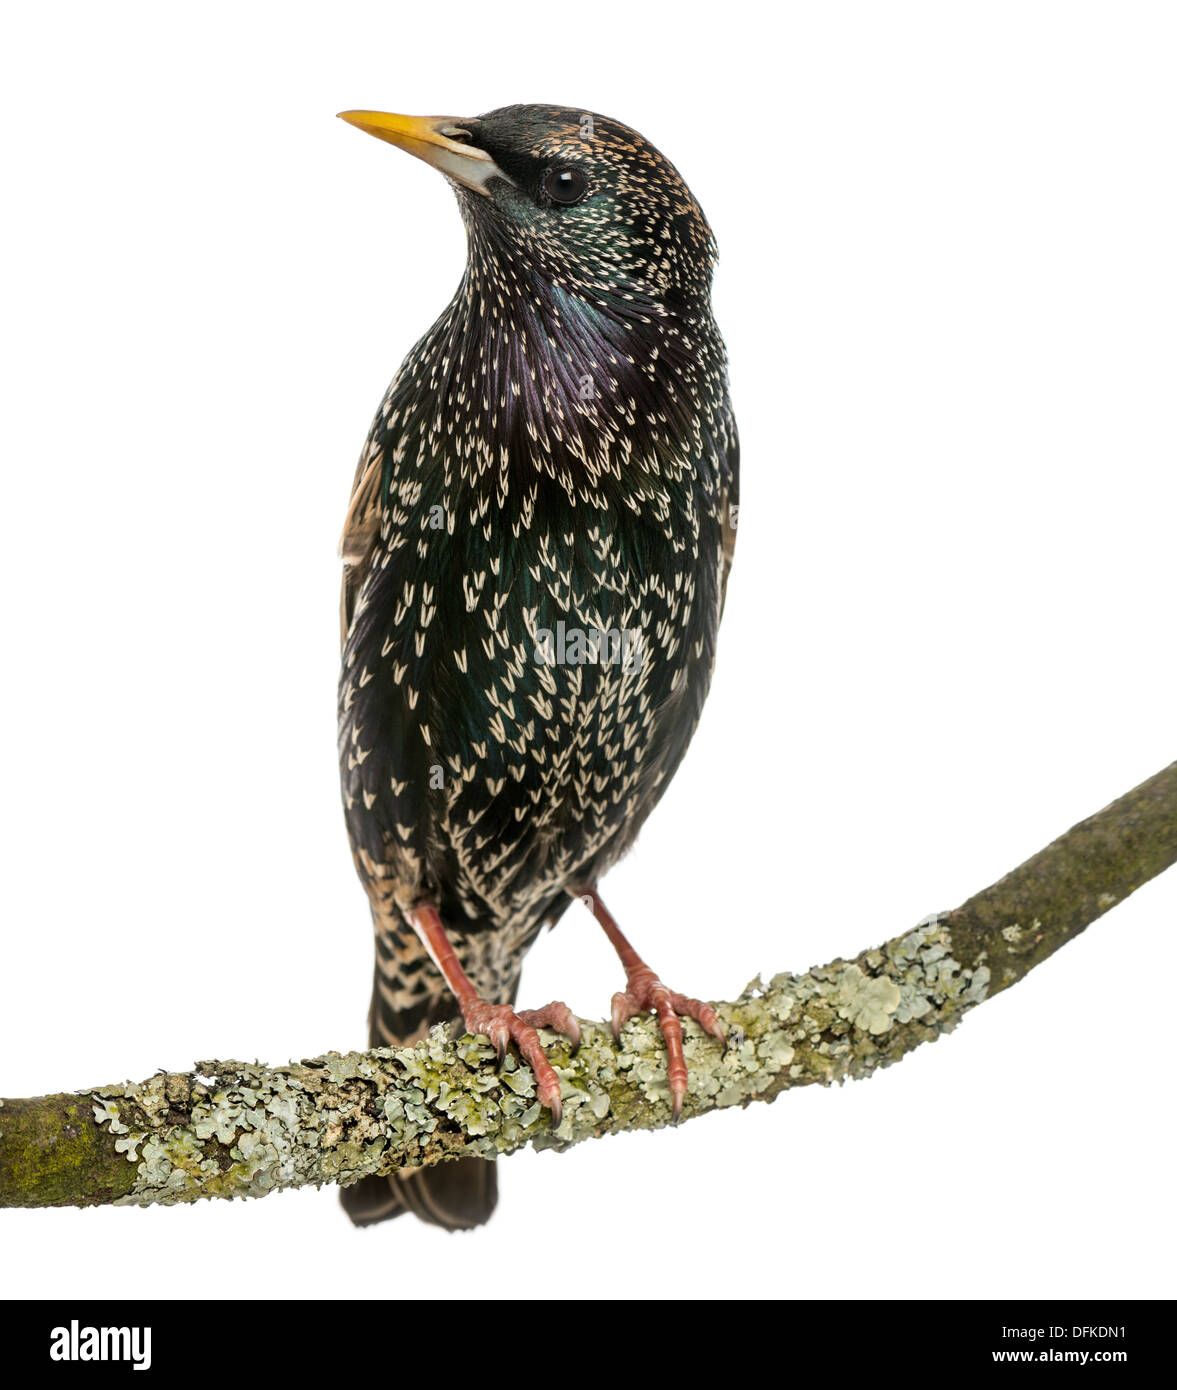 Common Starling perching on a branch, Sturnus vulgaris, against white background - Stock Image